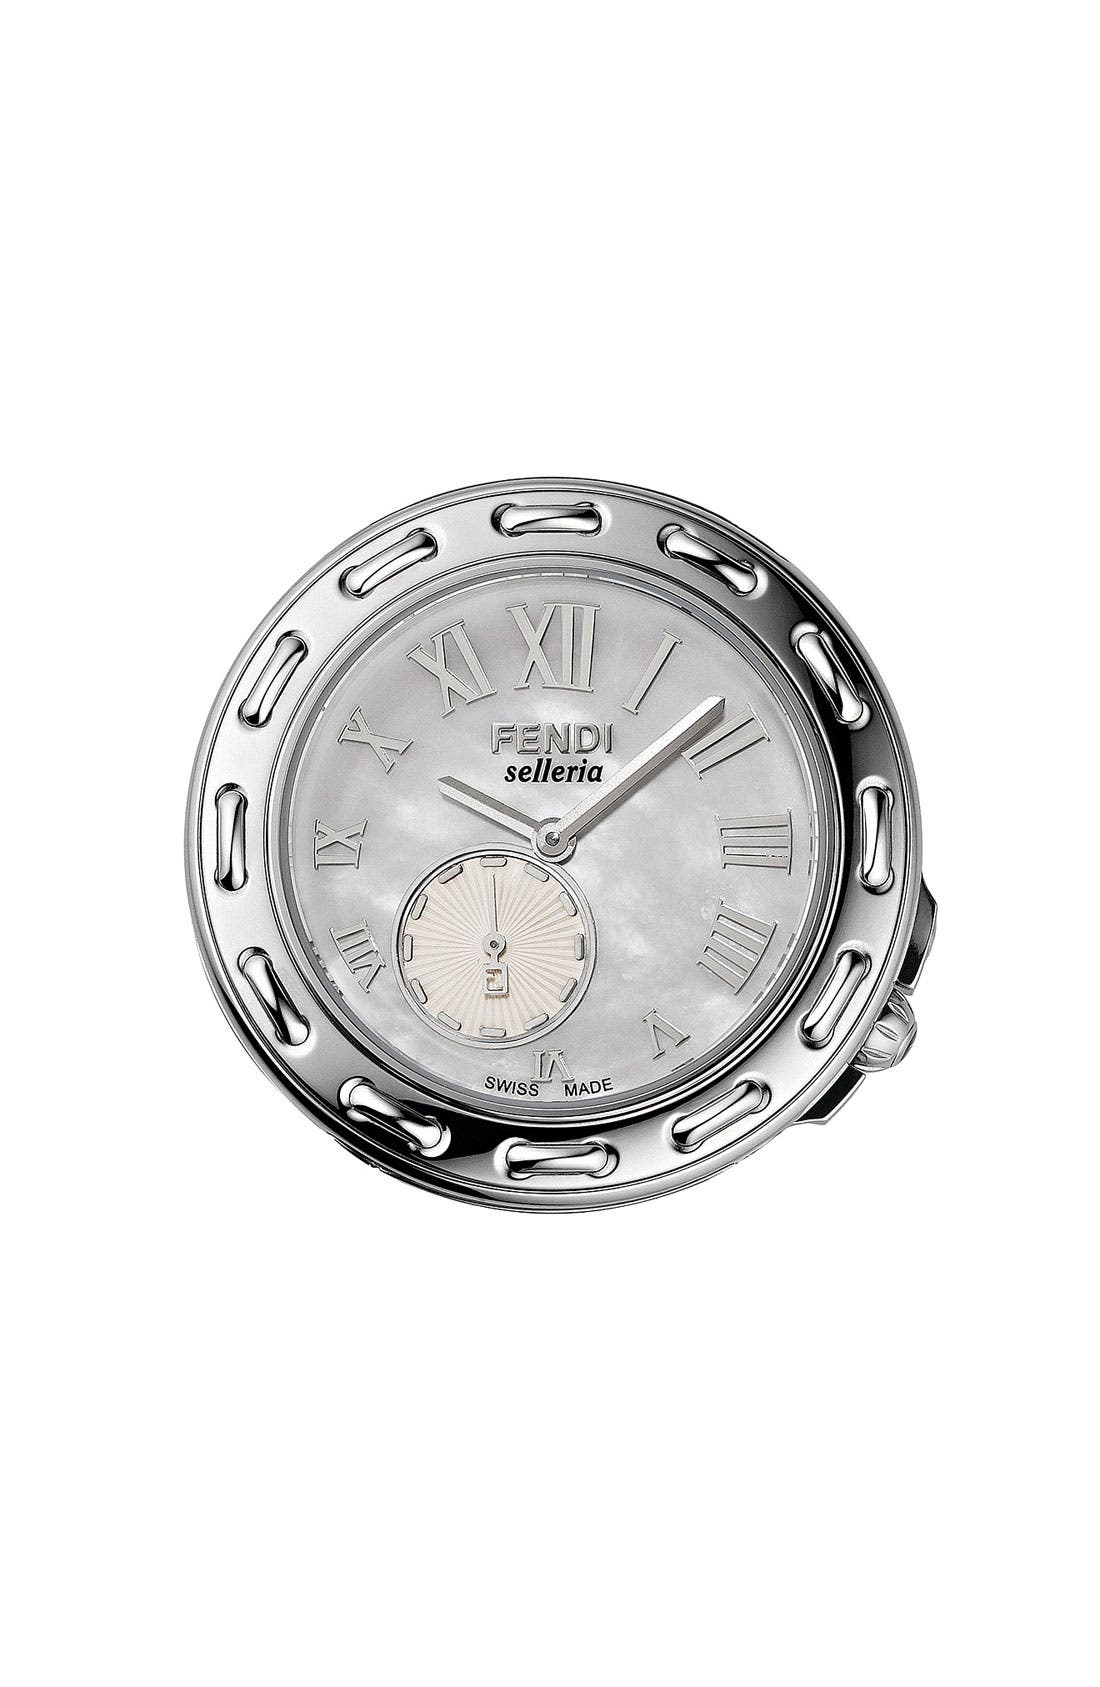 Alternate Image 1 Selected - Fendi 'Selleria' Mother-of-Pearl Watch Case, 46mm